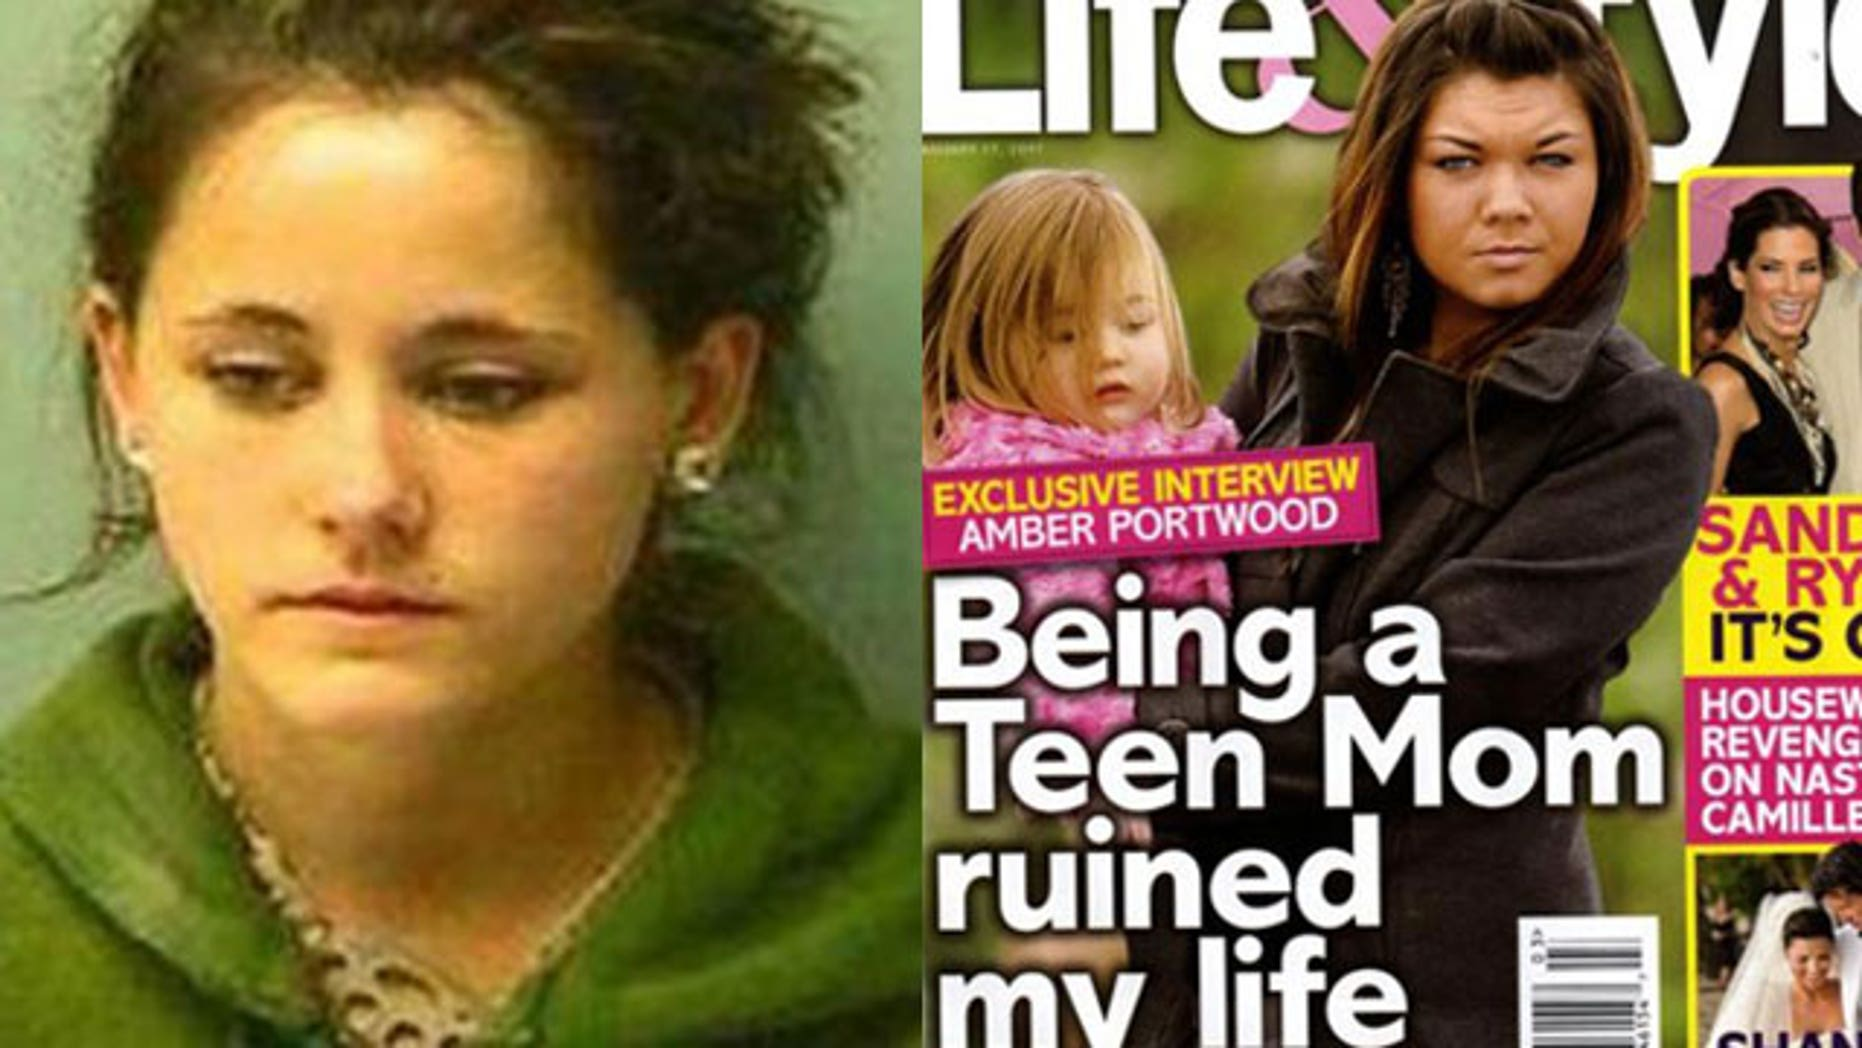 Troubled 'Teen Moms' Jenelle Evans (left) and Amber Portwood have both had trouble with the law.